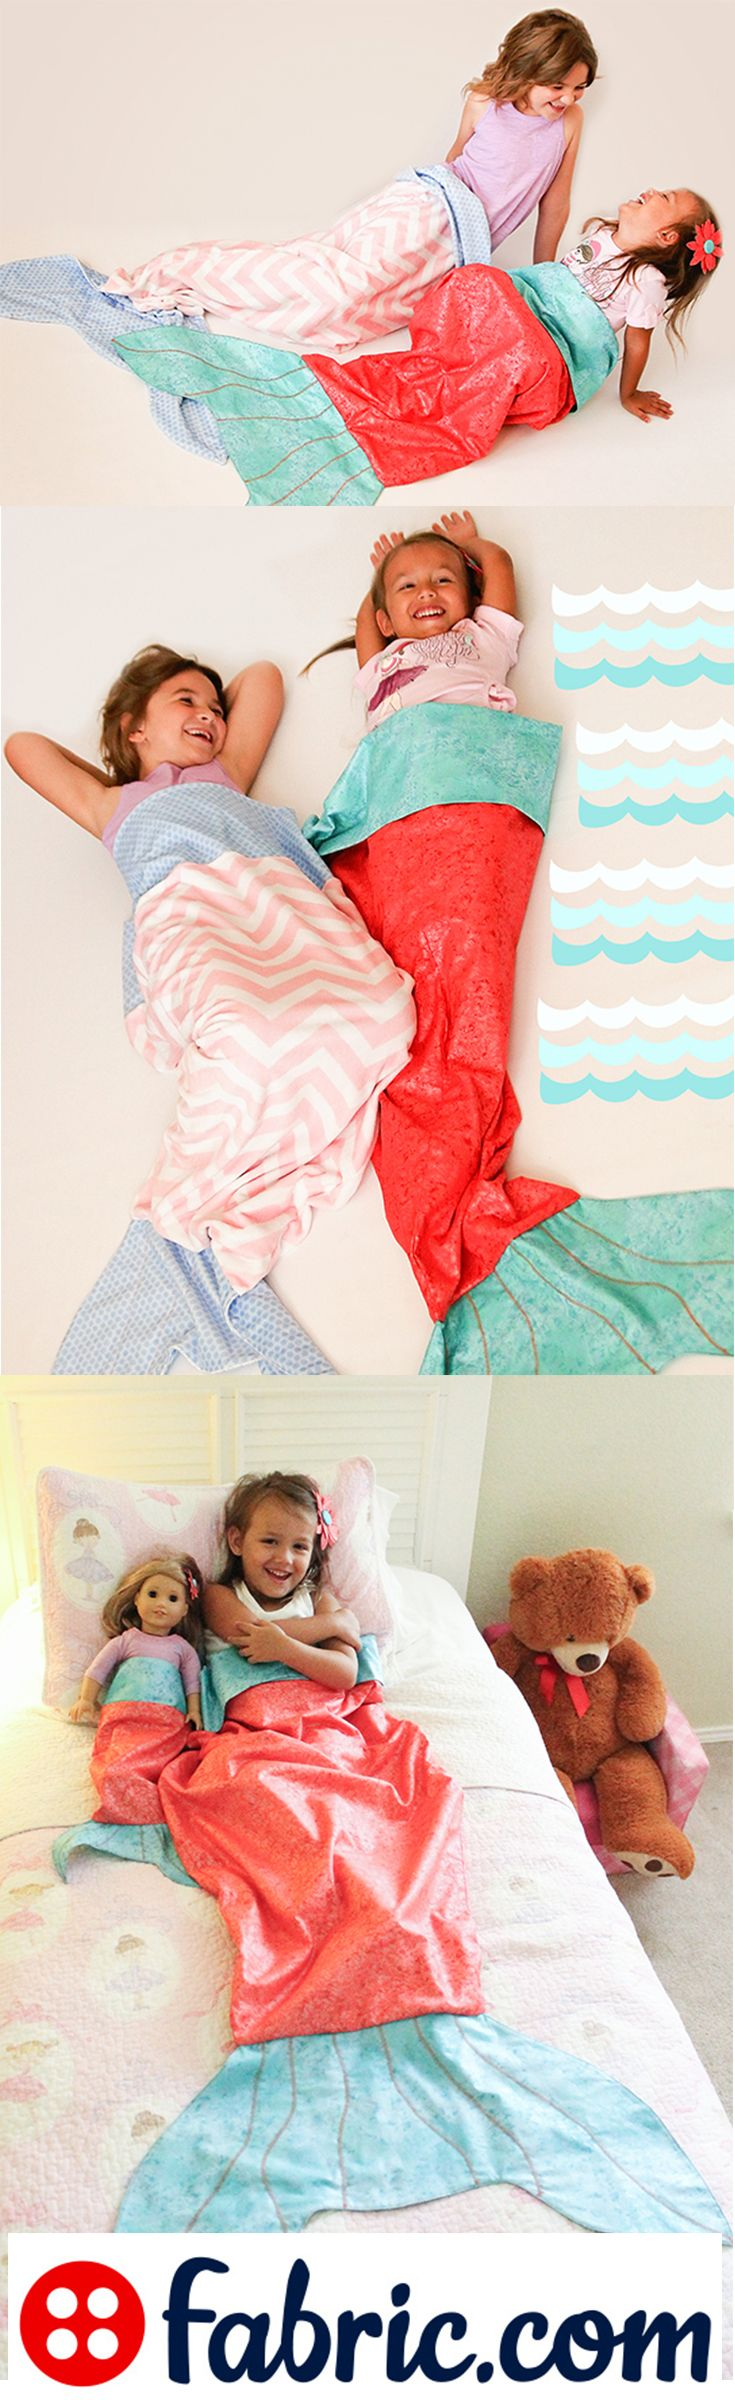 Free mermaid tail tutorial and pattern from fabric.com! Click to make it now.